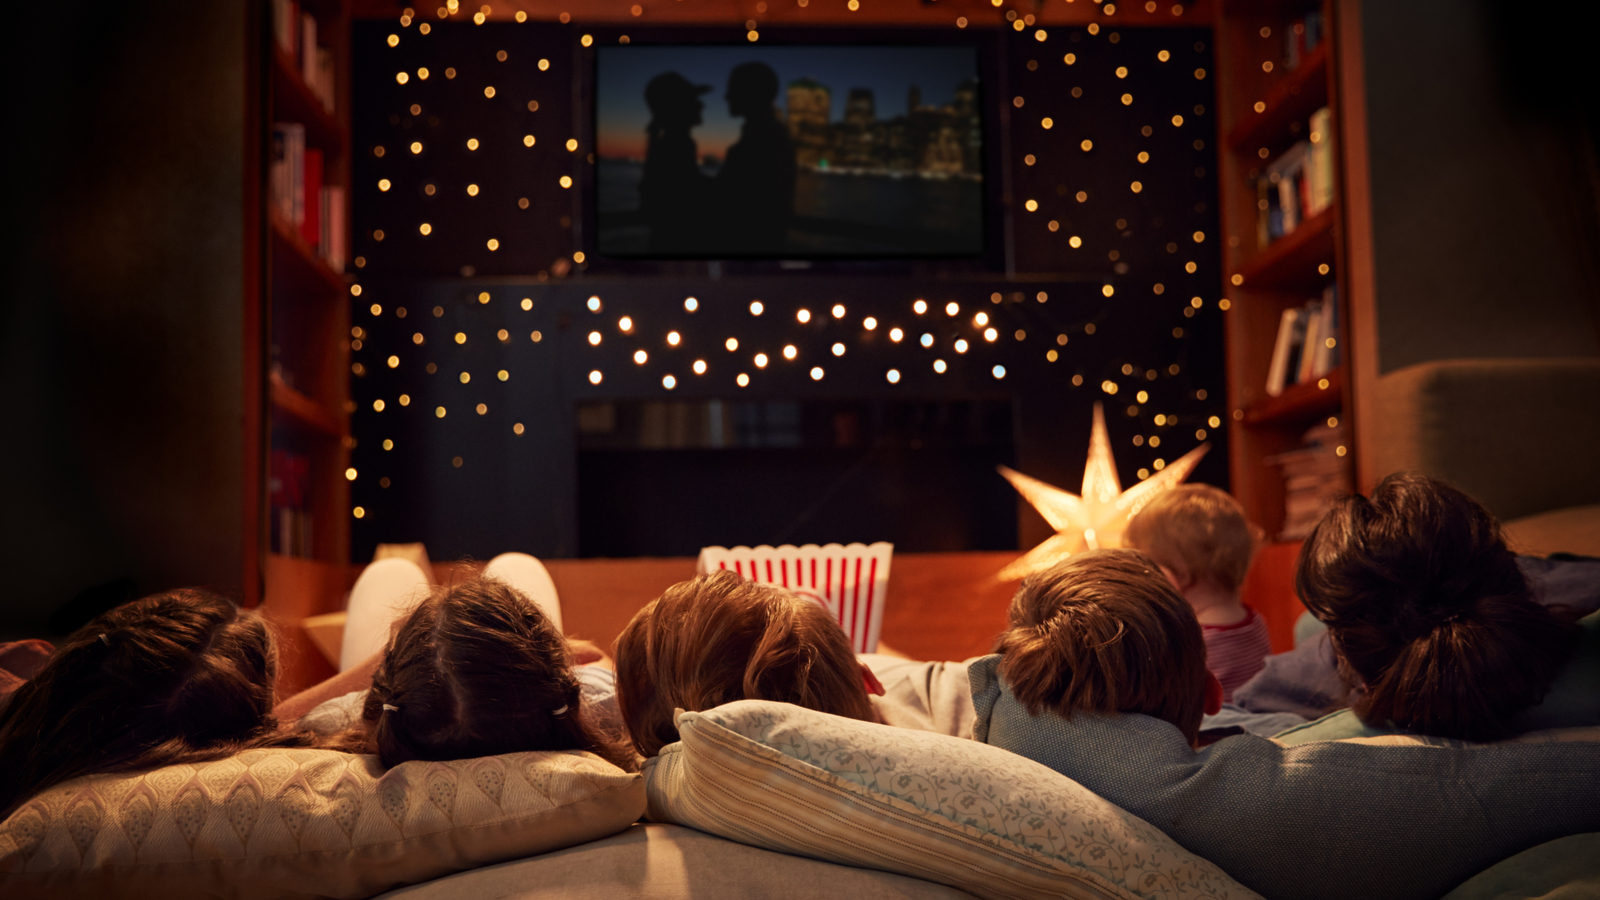 The best Netflix shows & movies to binge with the family